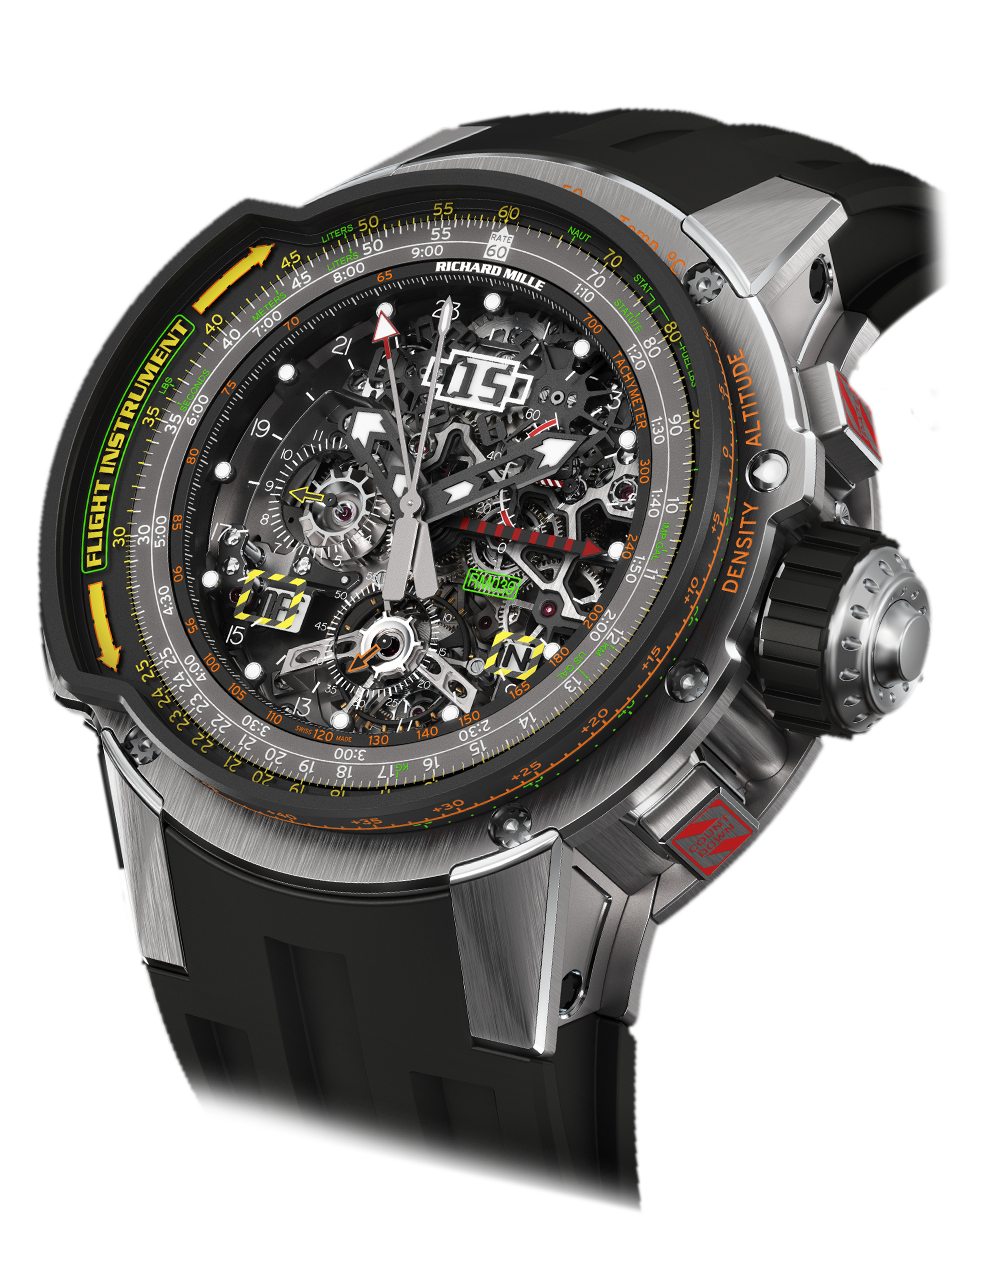 Rm 039-tourbillon aviation e6-b flyback chronograph